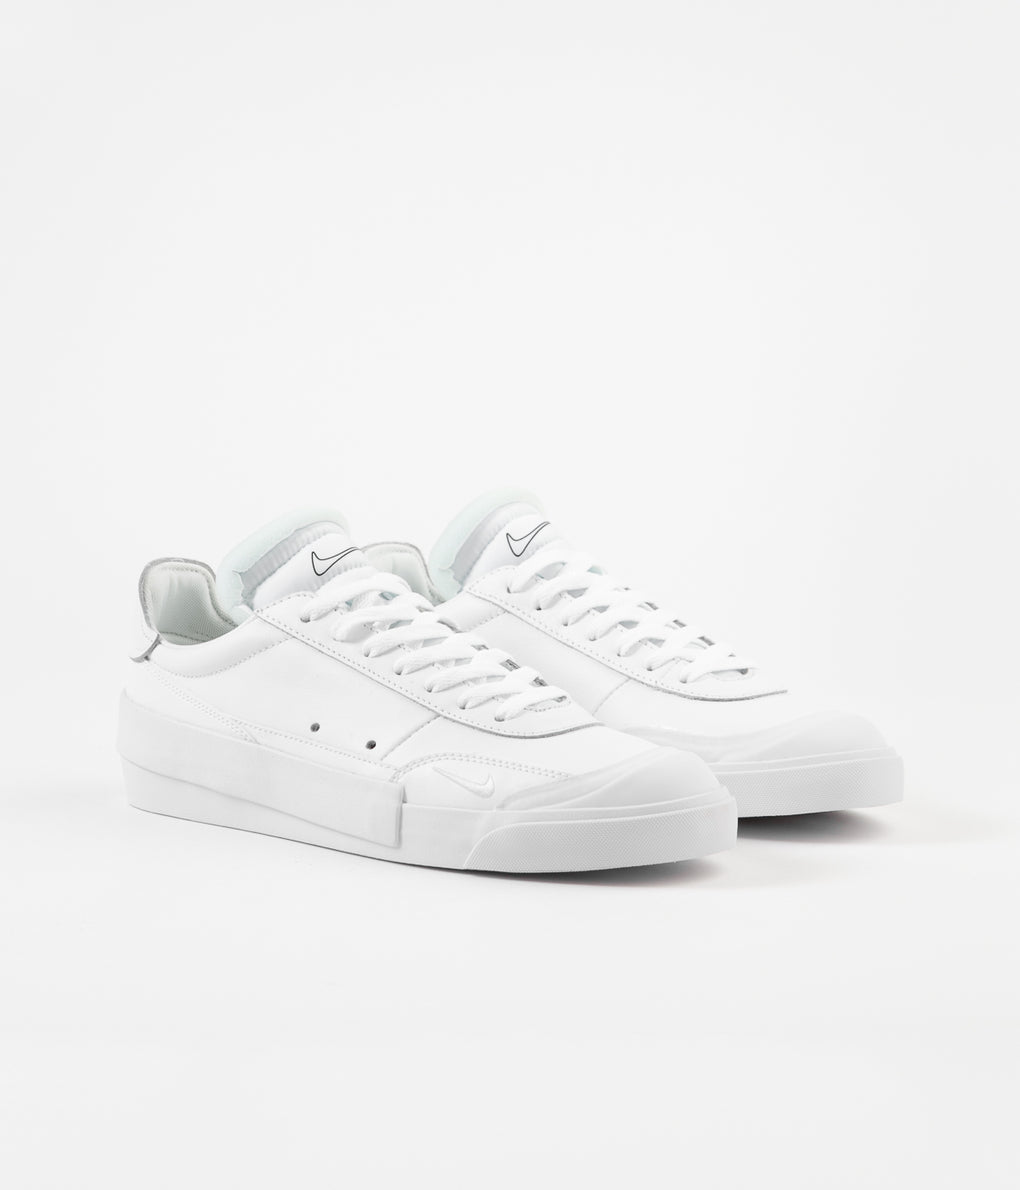 Nike Drop Type Premium Shoes - White / Black